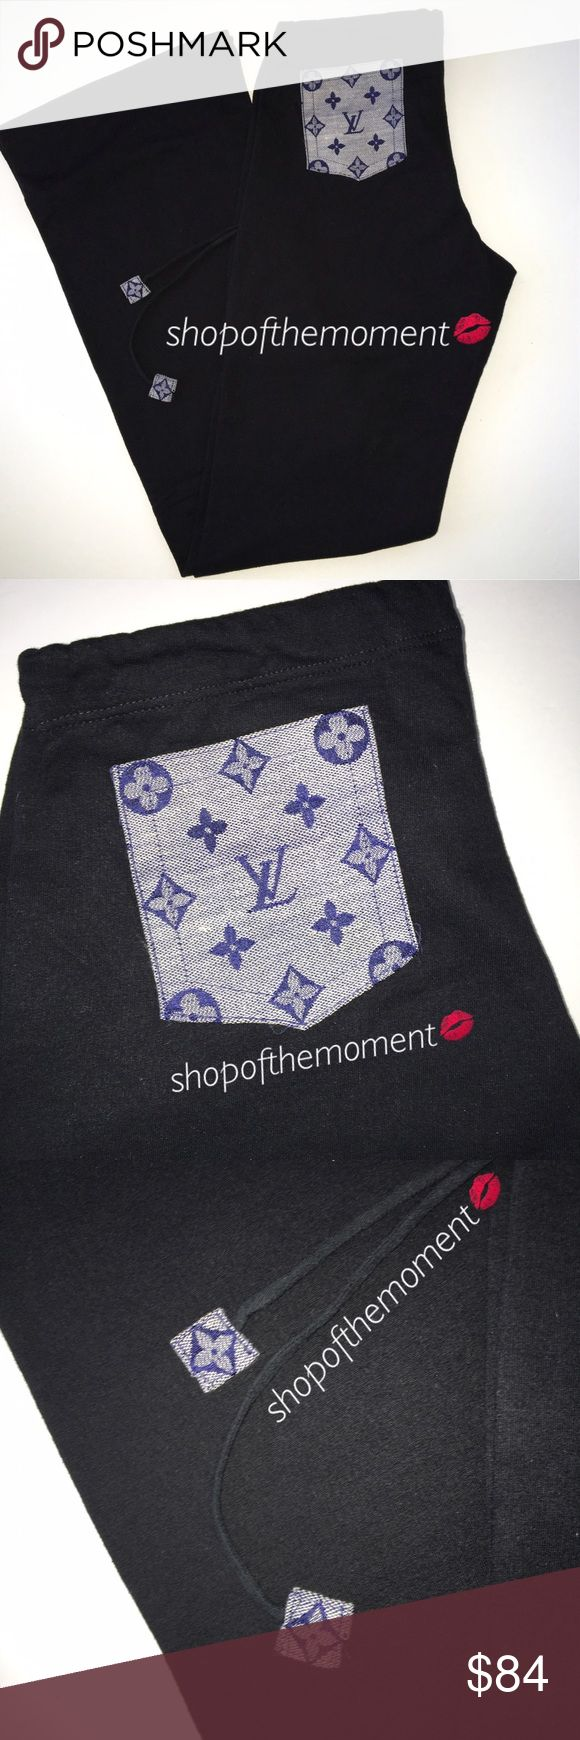 "👜🆕 Hand Embellished Monogram Sweatpants Hand Embellished Monogram Sweatpants with Patch + Drawstring Pulls  👜👜👜👜👜👜👜👜👜👜👜👜  Jacquard monogram patch and drawstring pulls elevates a pair of simple sweatpants to icon status. American Apparel sweats rendered in super soft cotton have a gorgeous figure flattering cut. Then they're all decked out. Handmade just for you handbag obsessed babes!   Approximate Measurements: Inseam: 32.25""  👜👜👜👜👜👜👜👜👜👜👜👜  ✗ Drama ✗ Trades ⚡️Fast…"